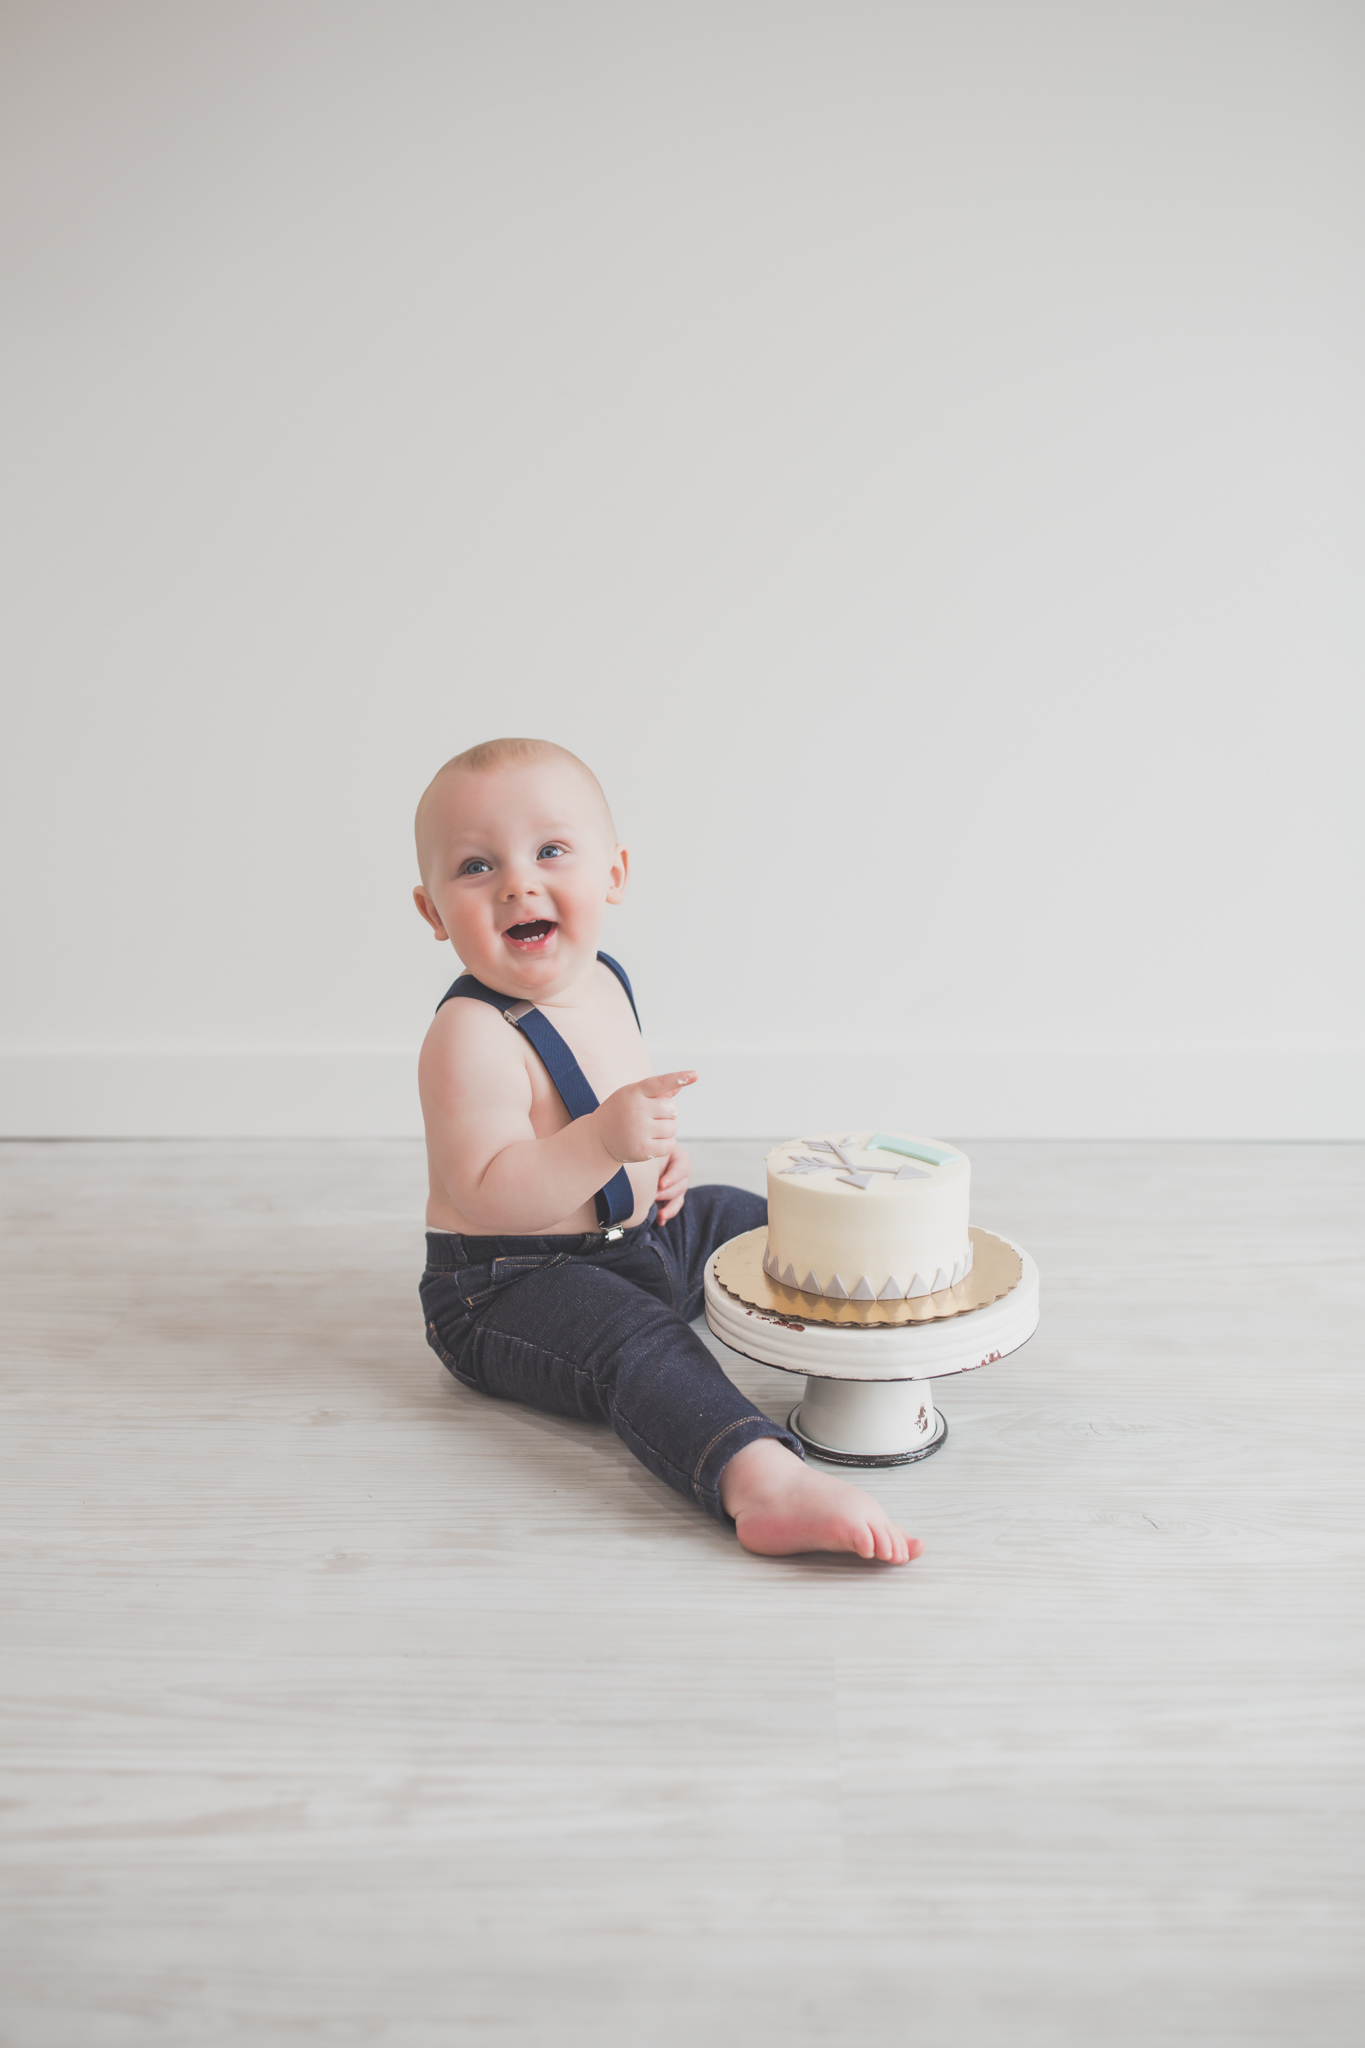 Cade 1 Year Old Cake Smash Milestone Session Cara Peterson Photography Rockford IL -20-2.jpg